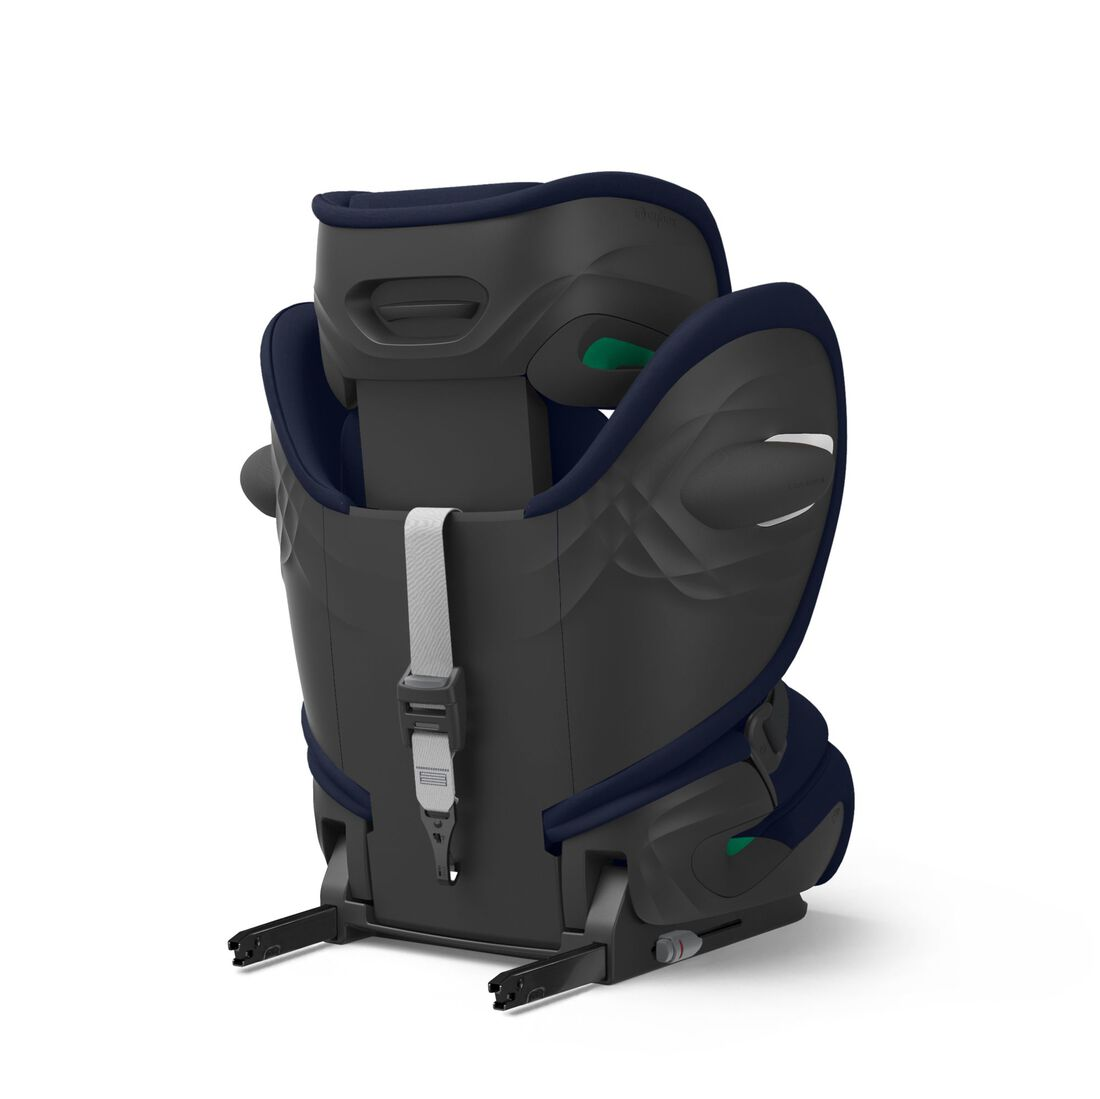 CYBEX Pallas G i-Size - Navy Blue in Navy Blue large image number 5